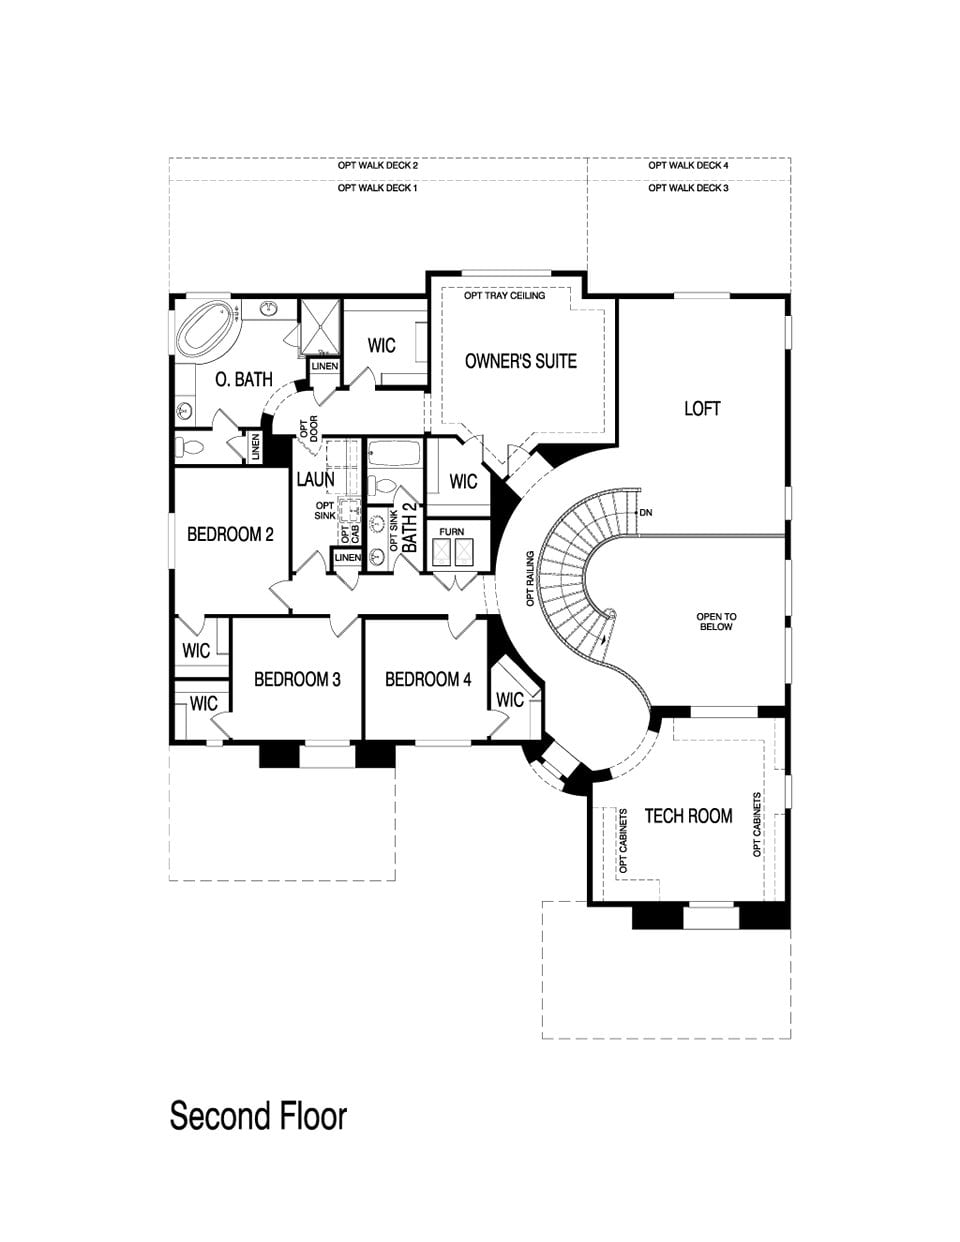 Pulte Home Designs. Pulte Homes Ohio Pulte Homes Austin Pulte Group ...